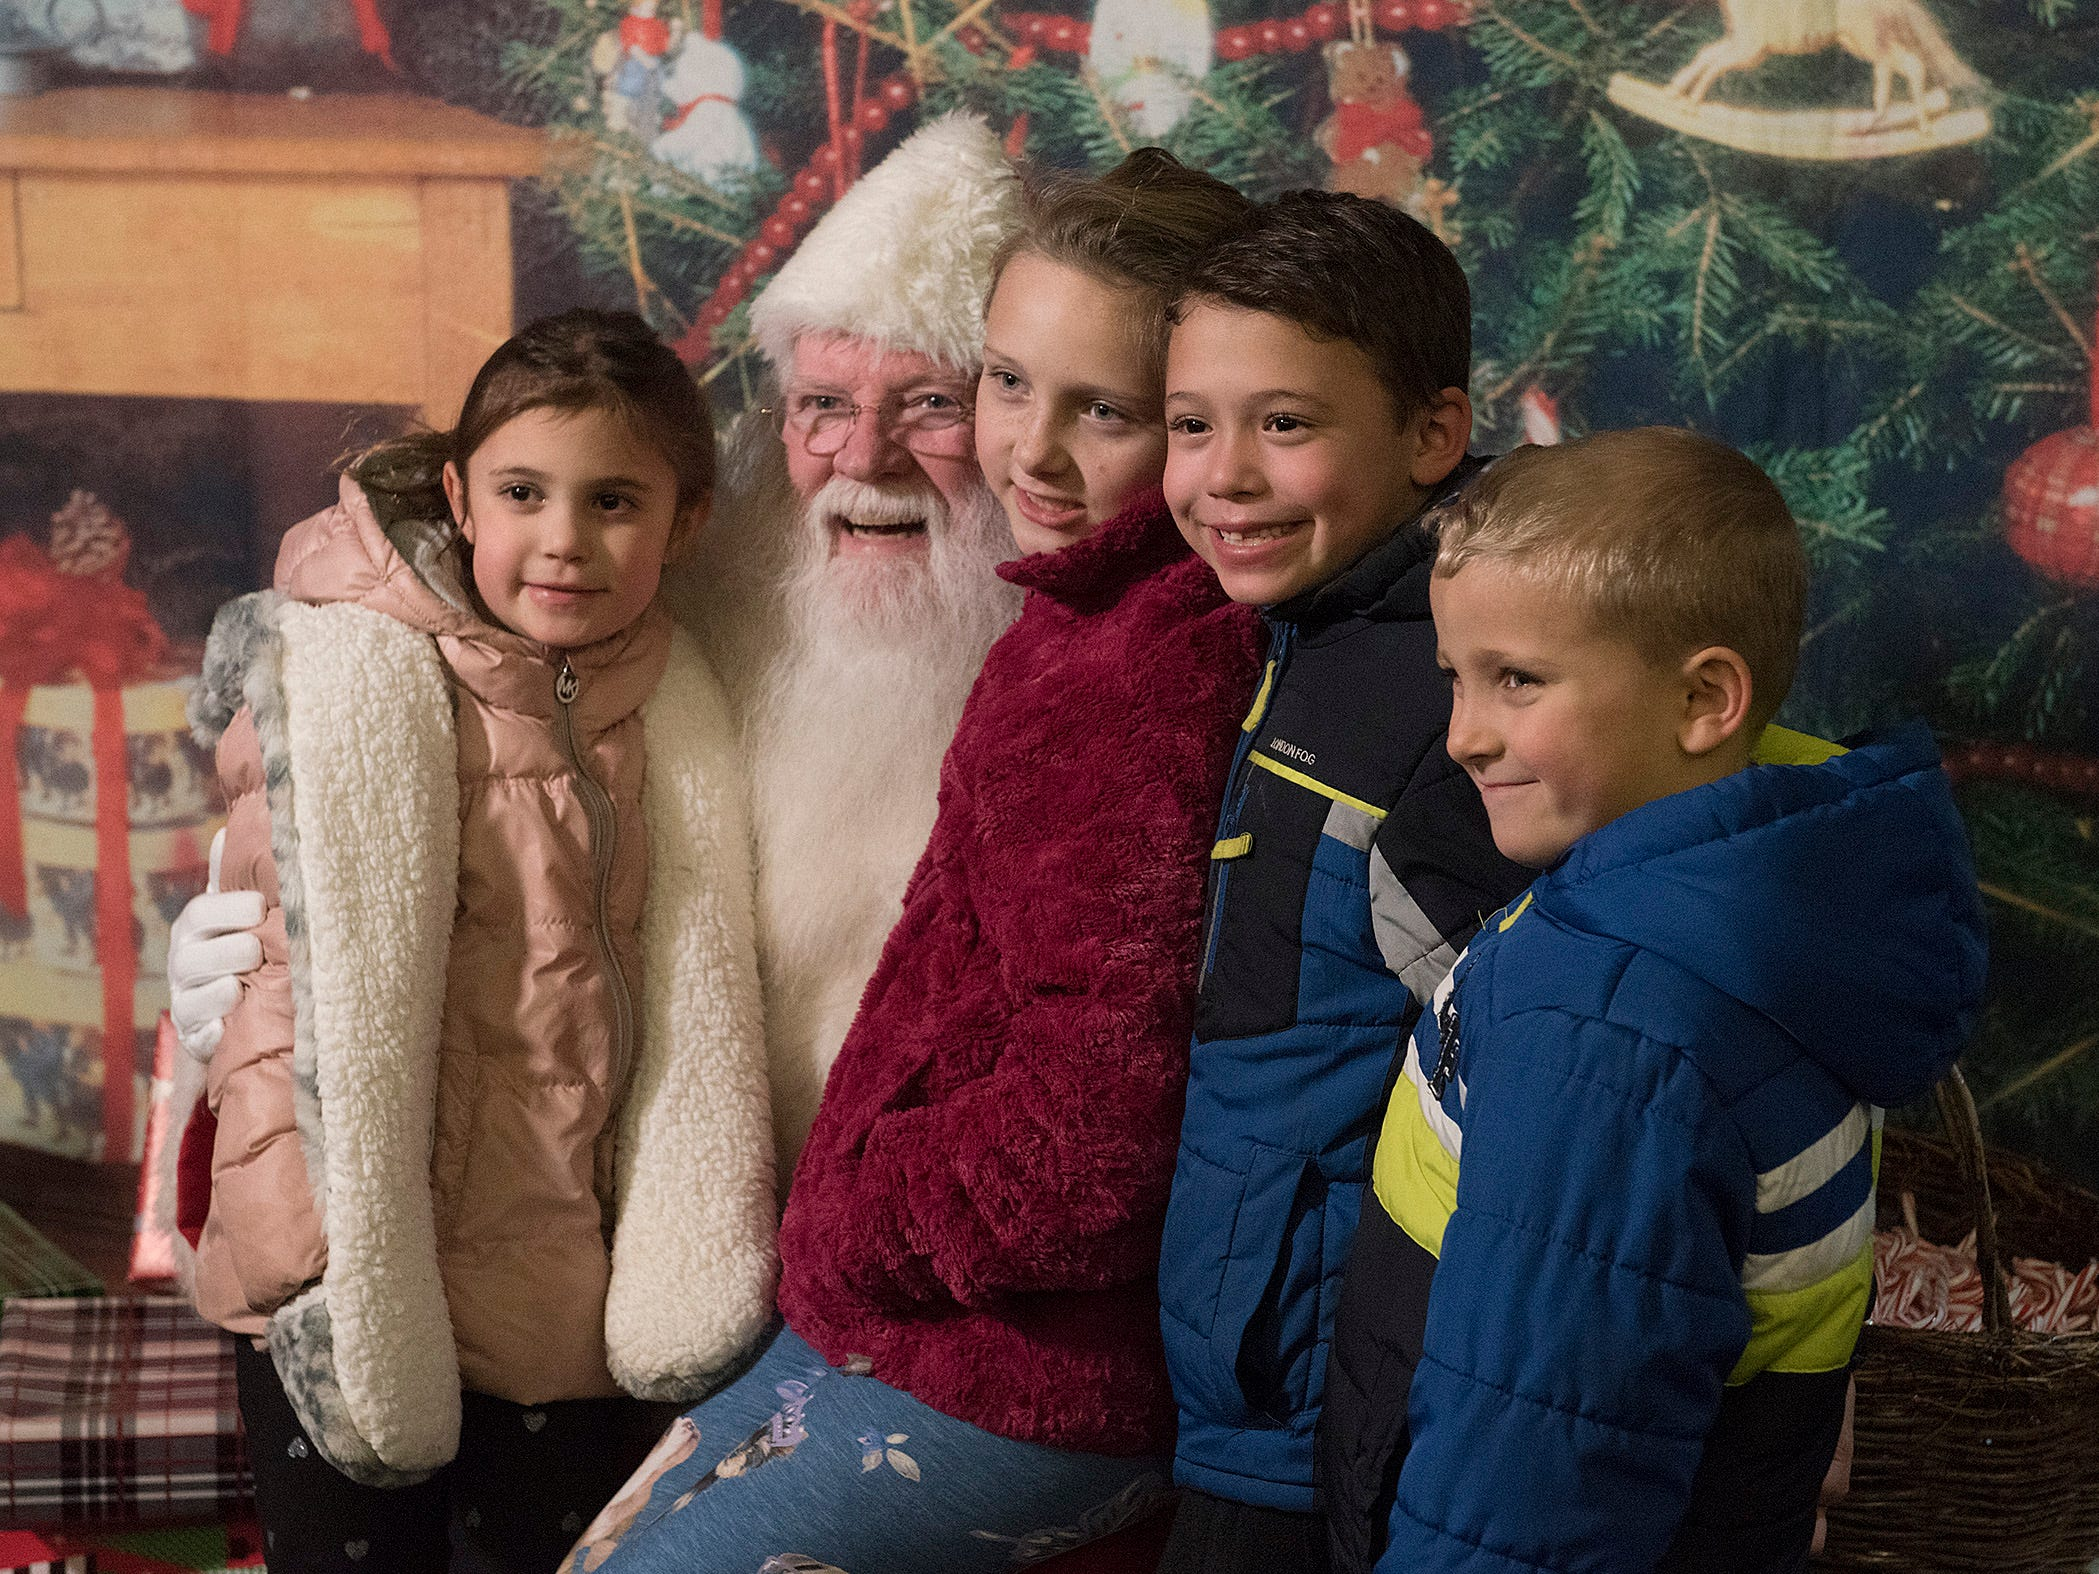 Aubriana Schwartz, 5 years old, Emma Crane, 8, Dominic Schwartz, 7, and Carson Crane, 5, meet the one and only Santa Claus.